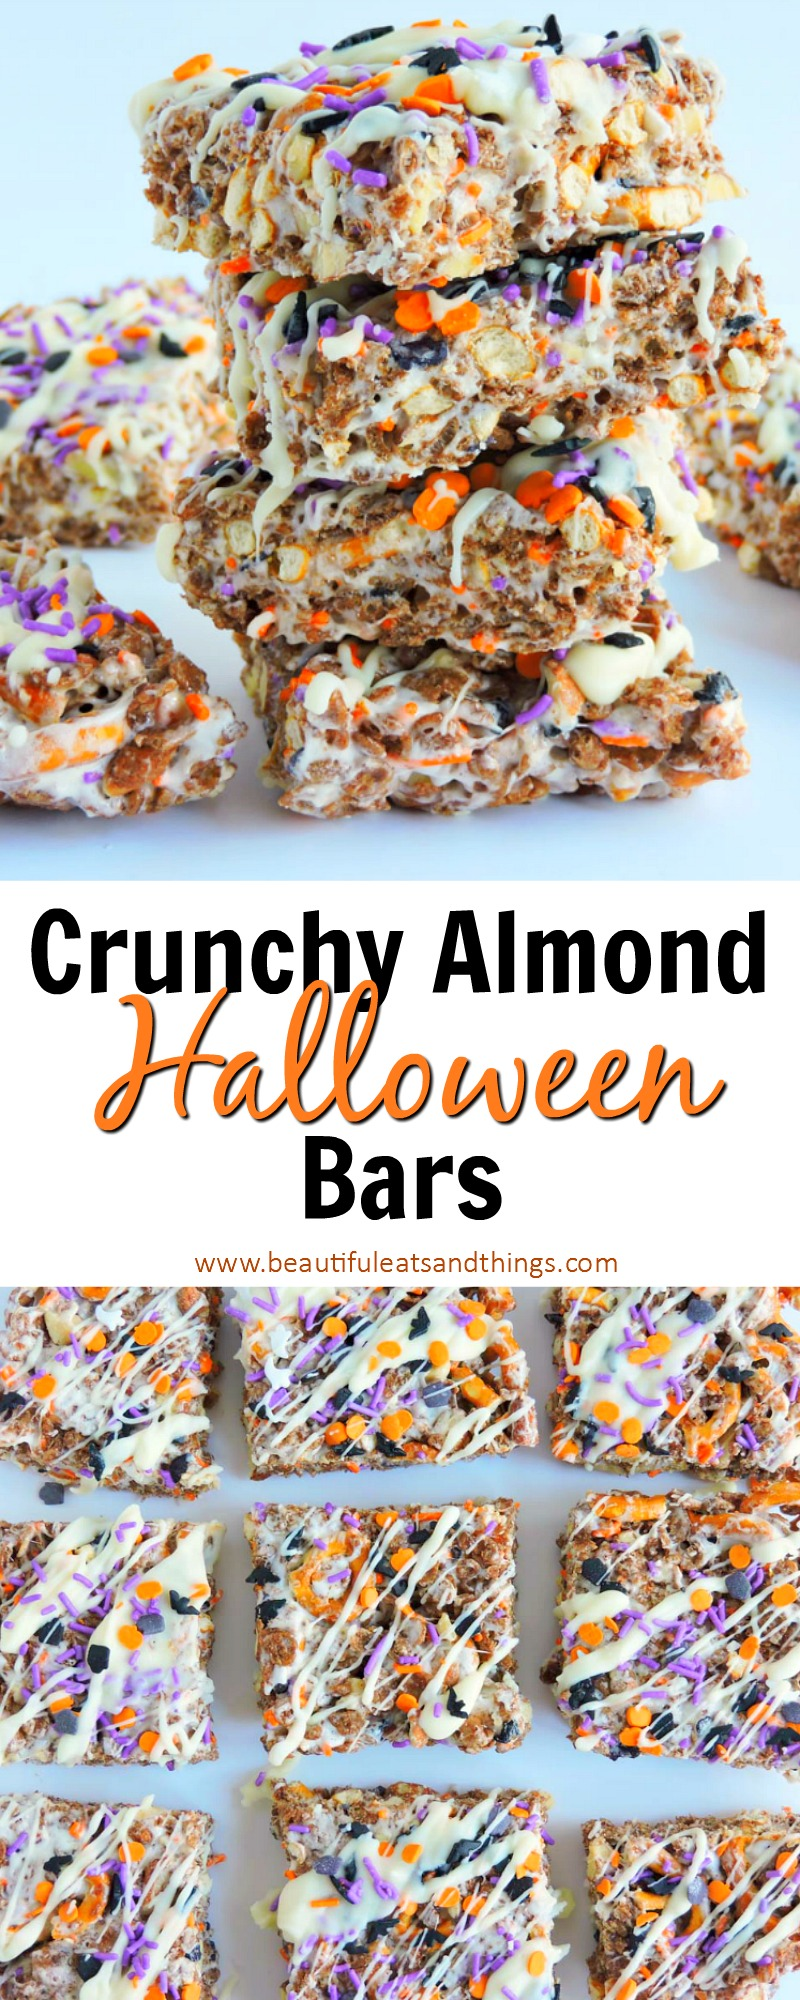 Crunchy Almond Halloween Bars- Chocolate rice krispie treats with almonds and pretzels, drizzled with halloween sprinkles and white chocolate